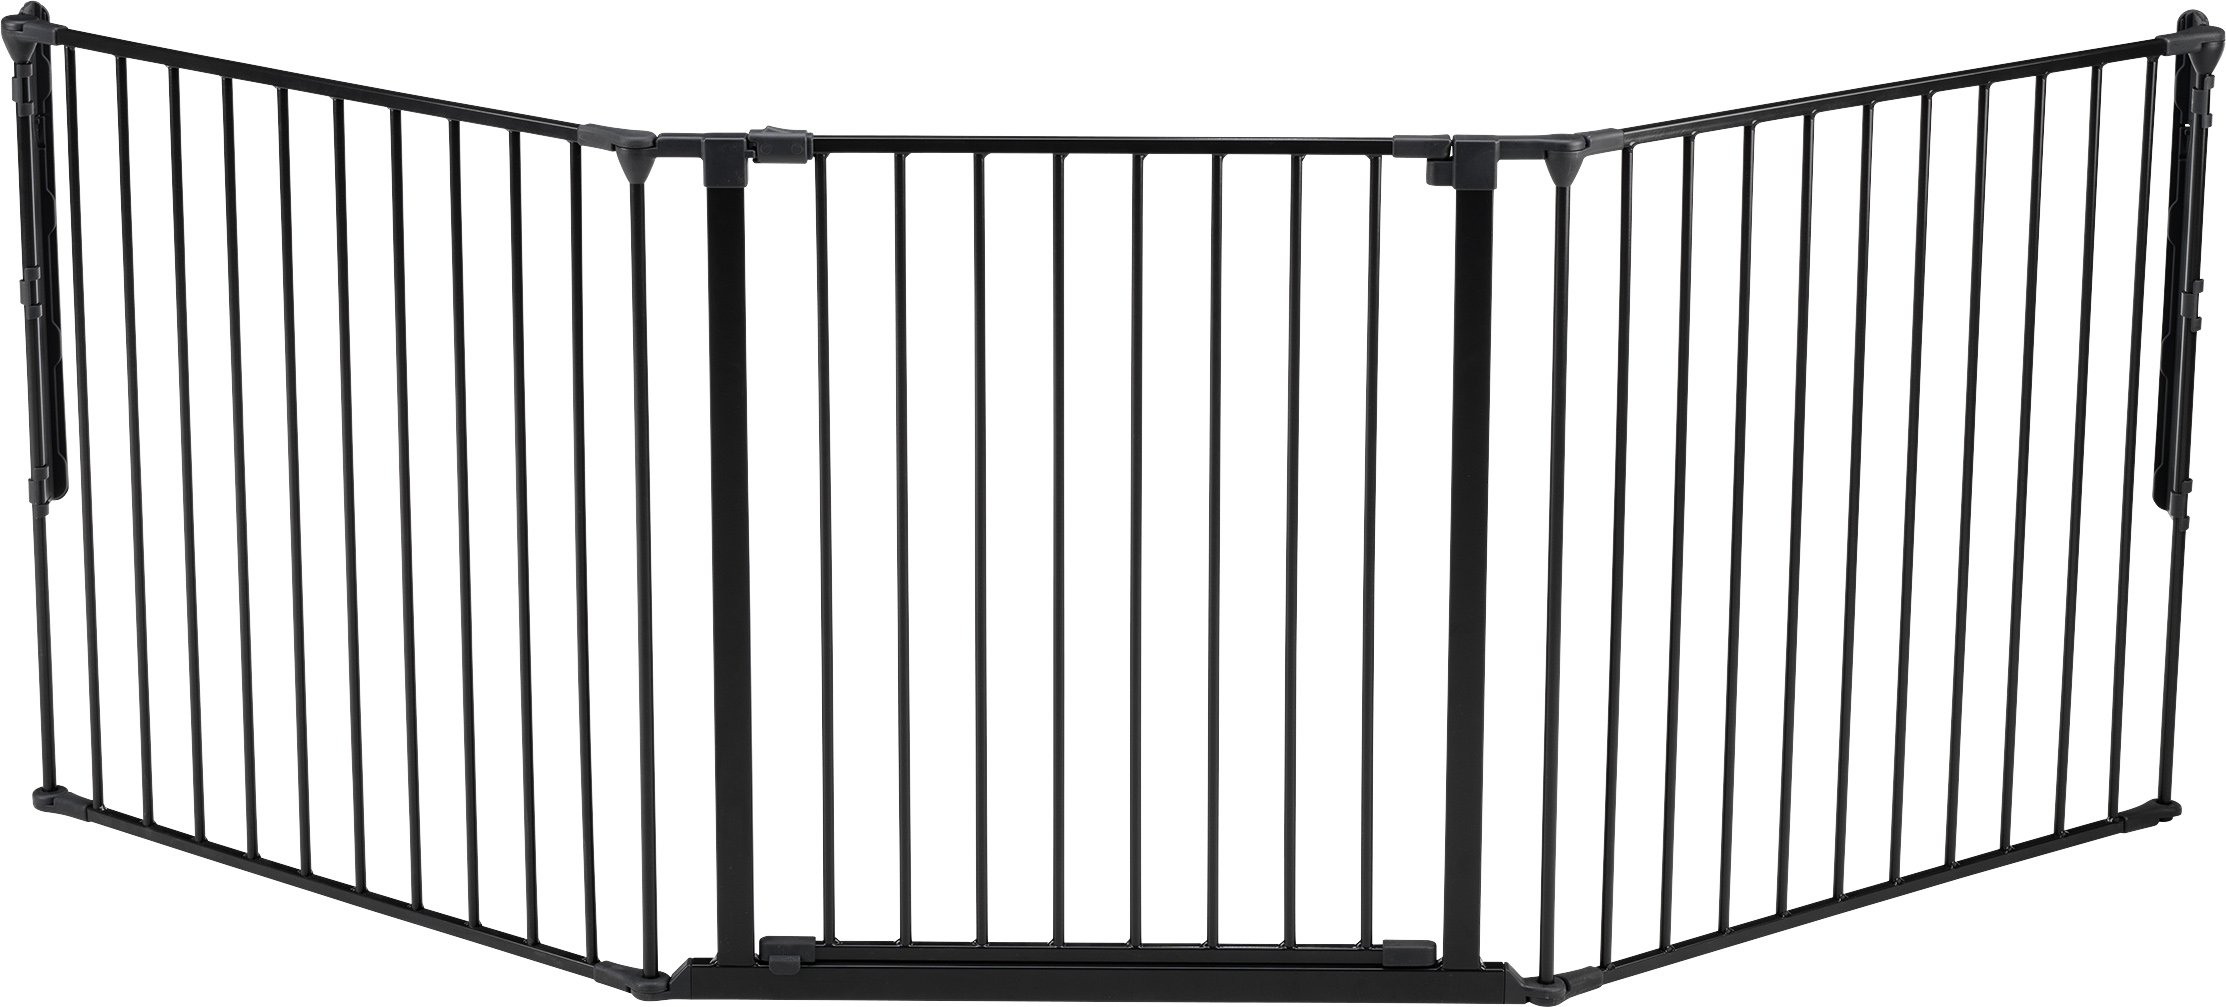 BabyDan Configure (Large 90-223cm, Anthracite) BabyDan Only configure system fulfilling newest european safety standard Multi purpose room divider and gate for wider openings Flexible and easy to fit 1